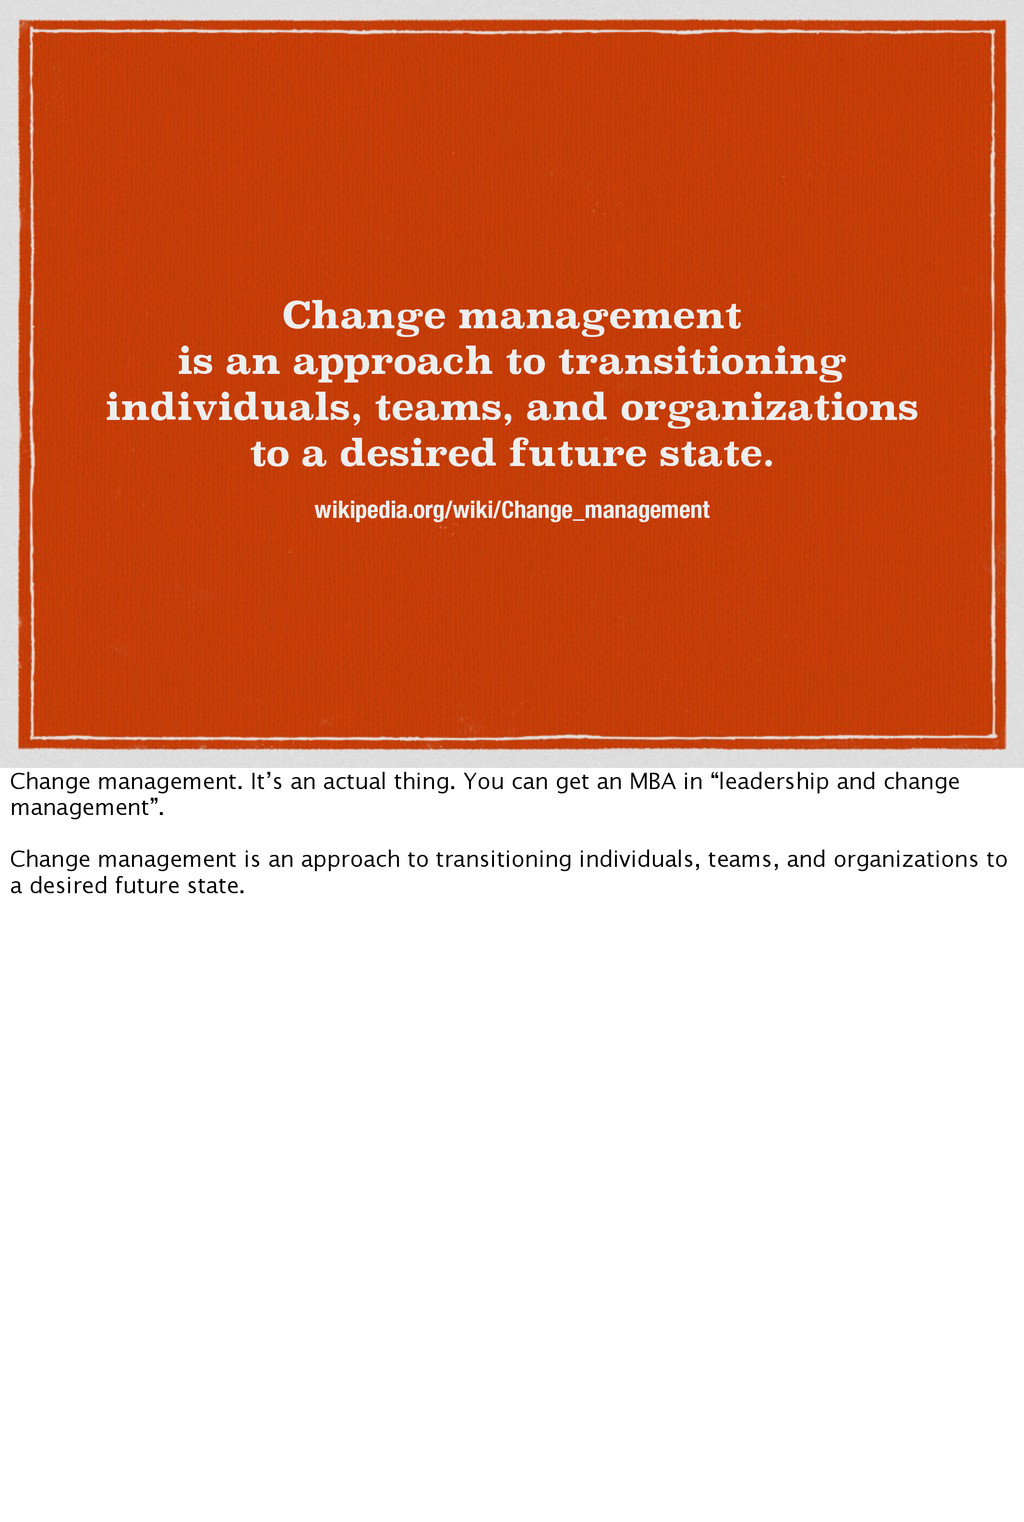 Change management is an approach to transitioni...